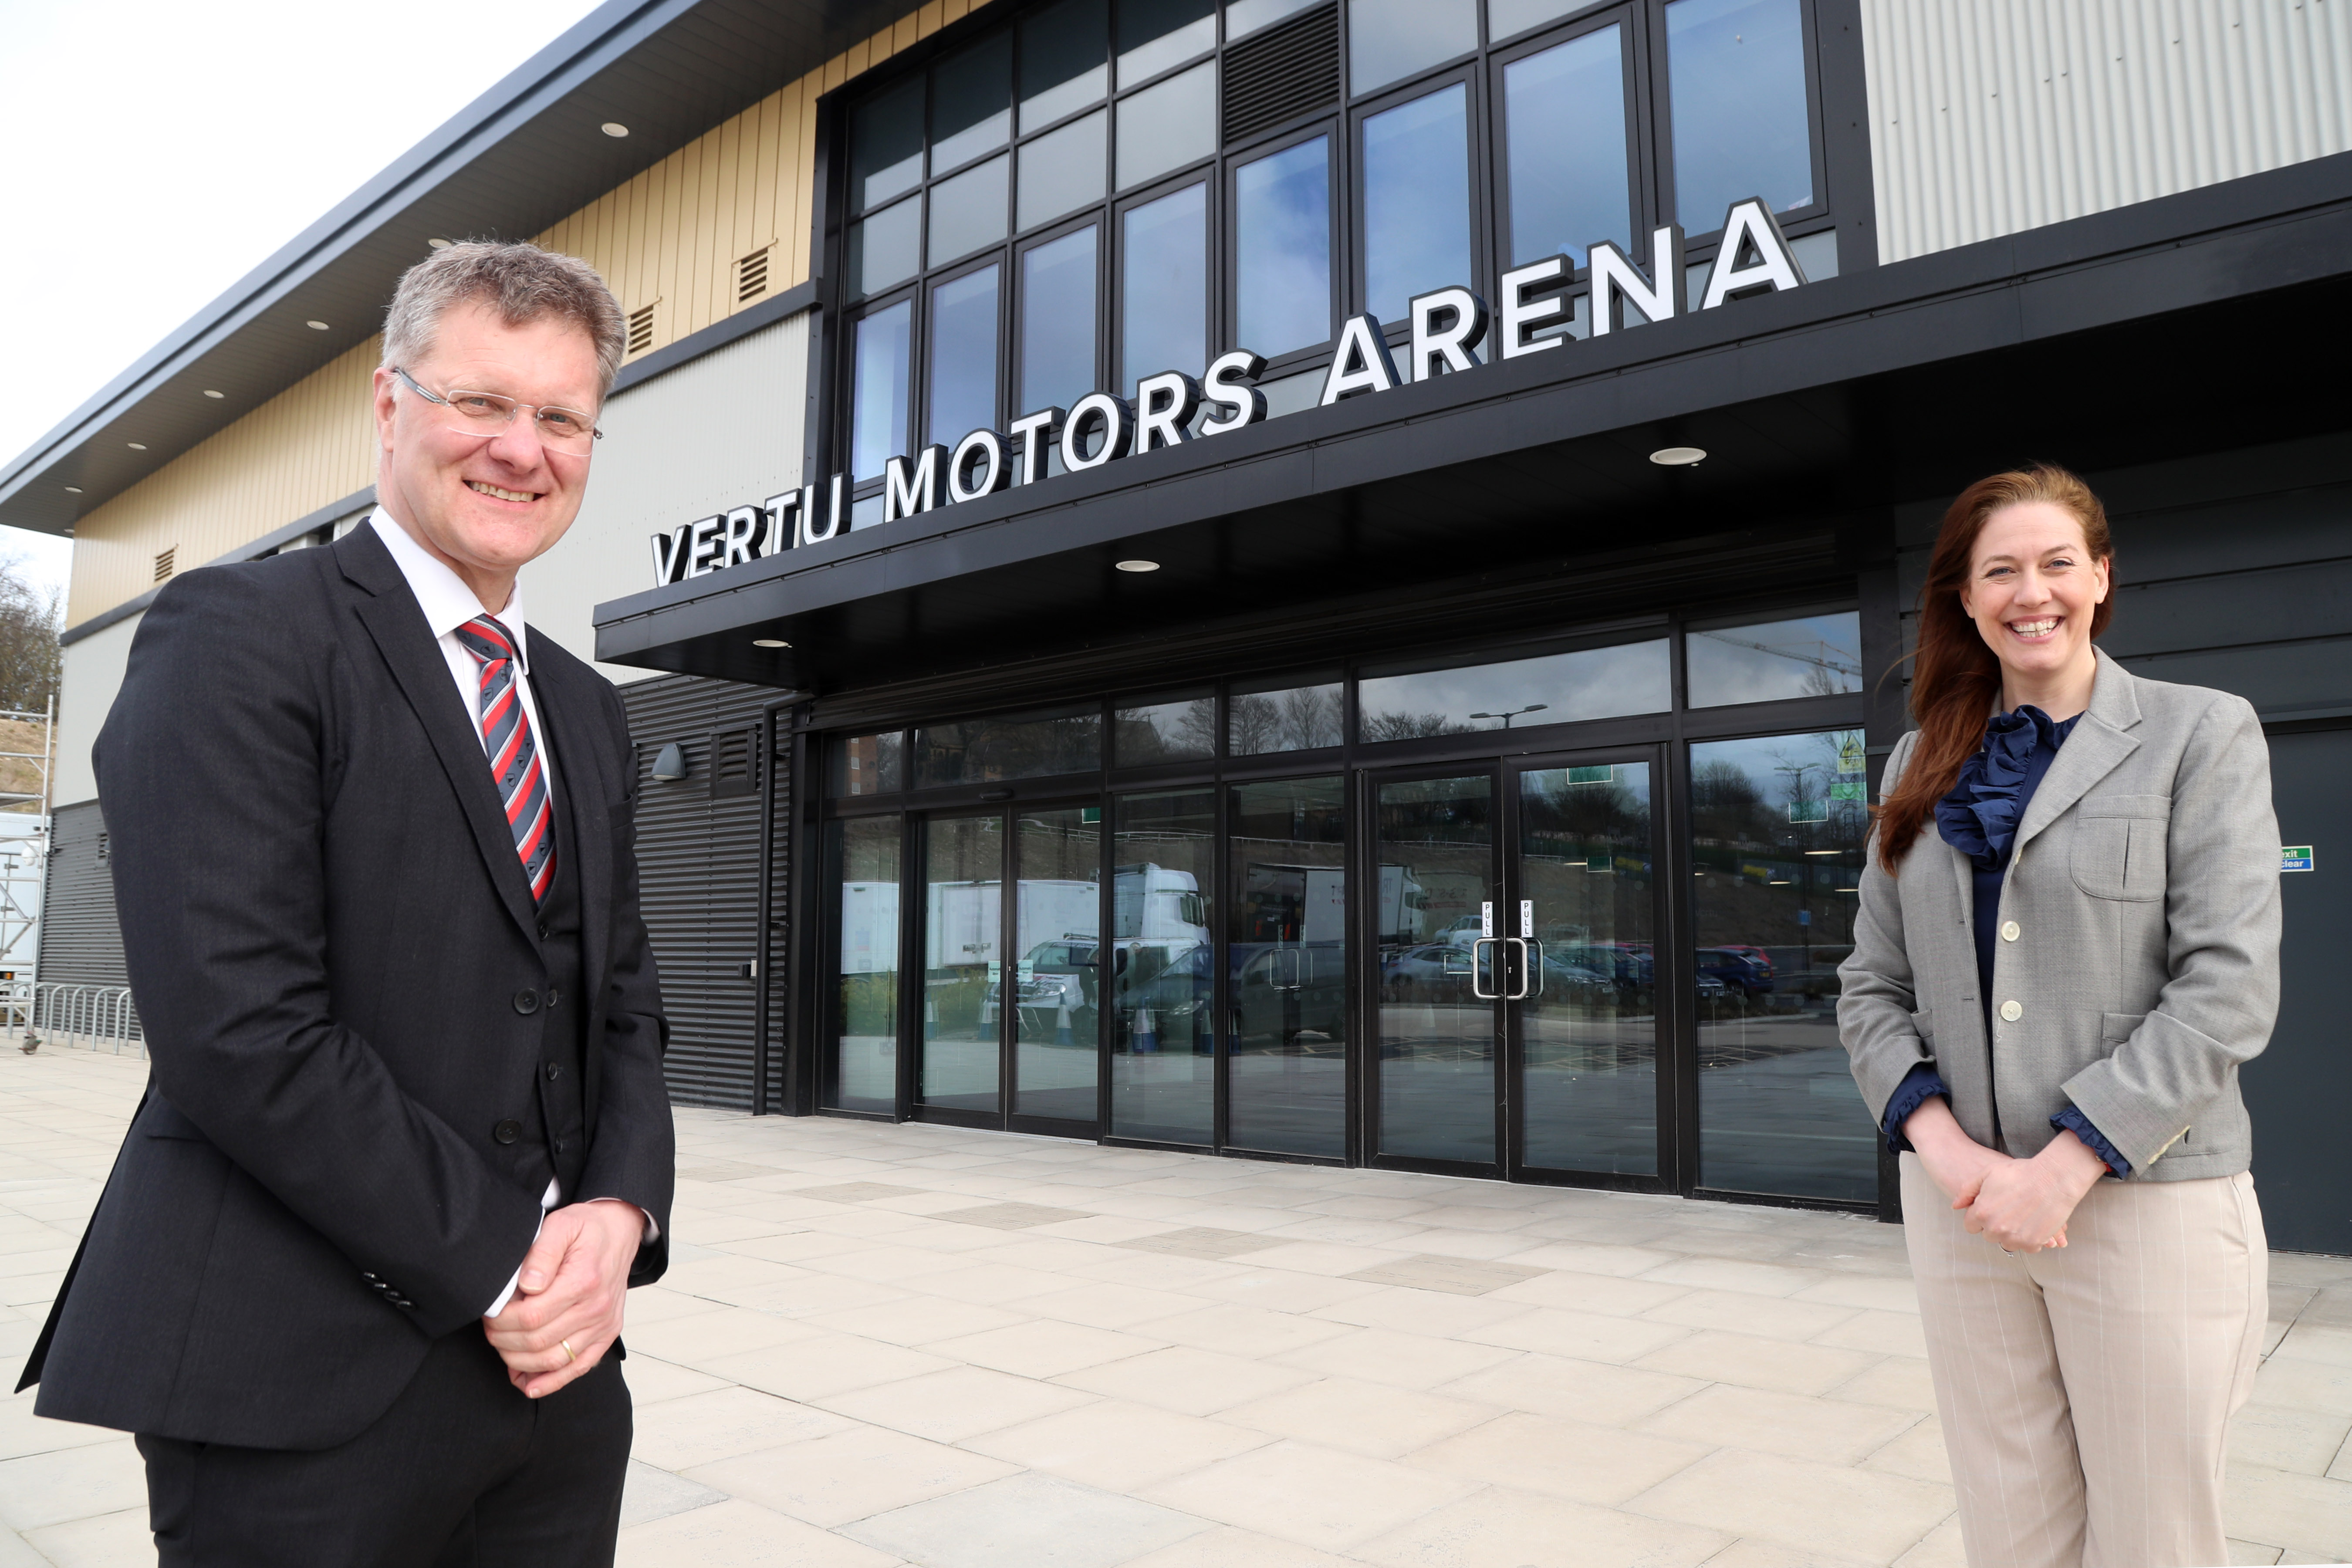 Vertu Motors Arena Unveiled In Newcastle